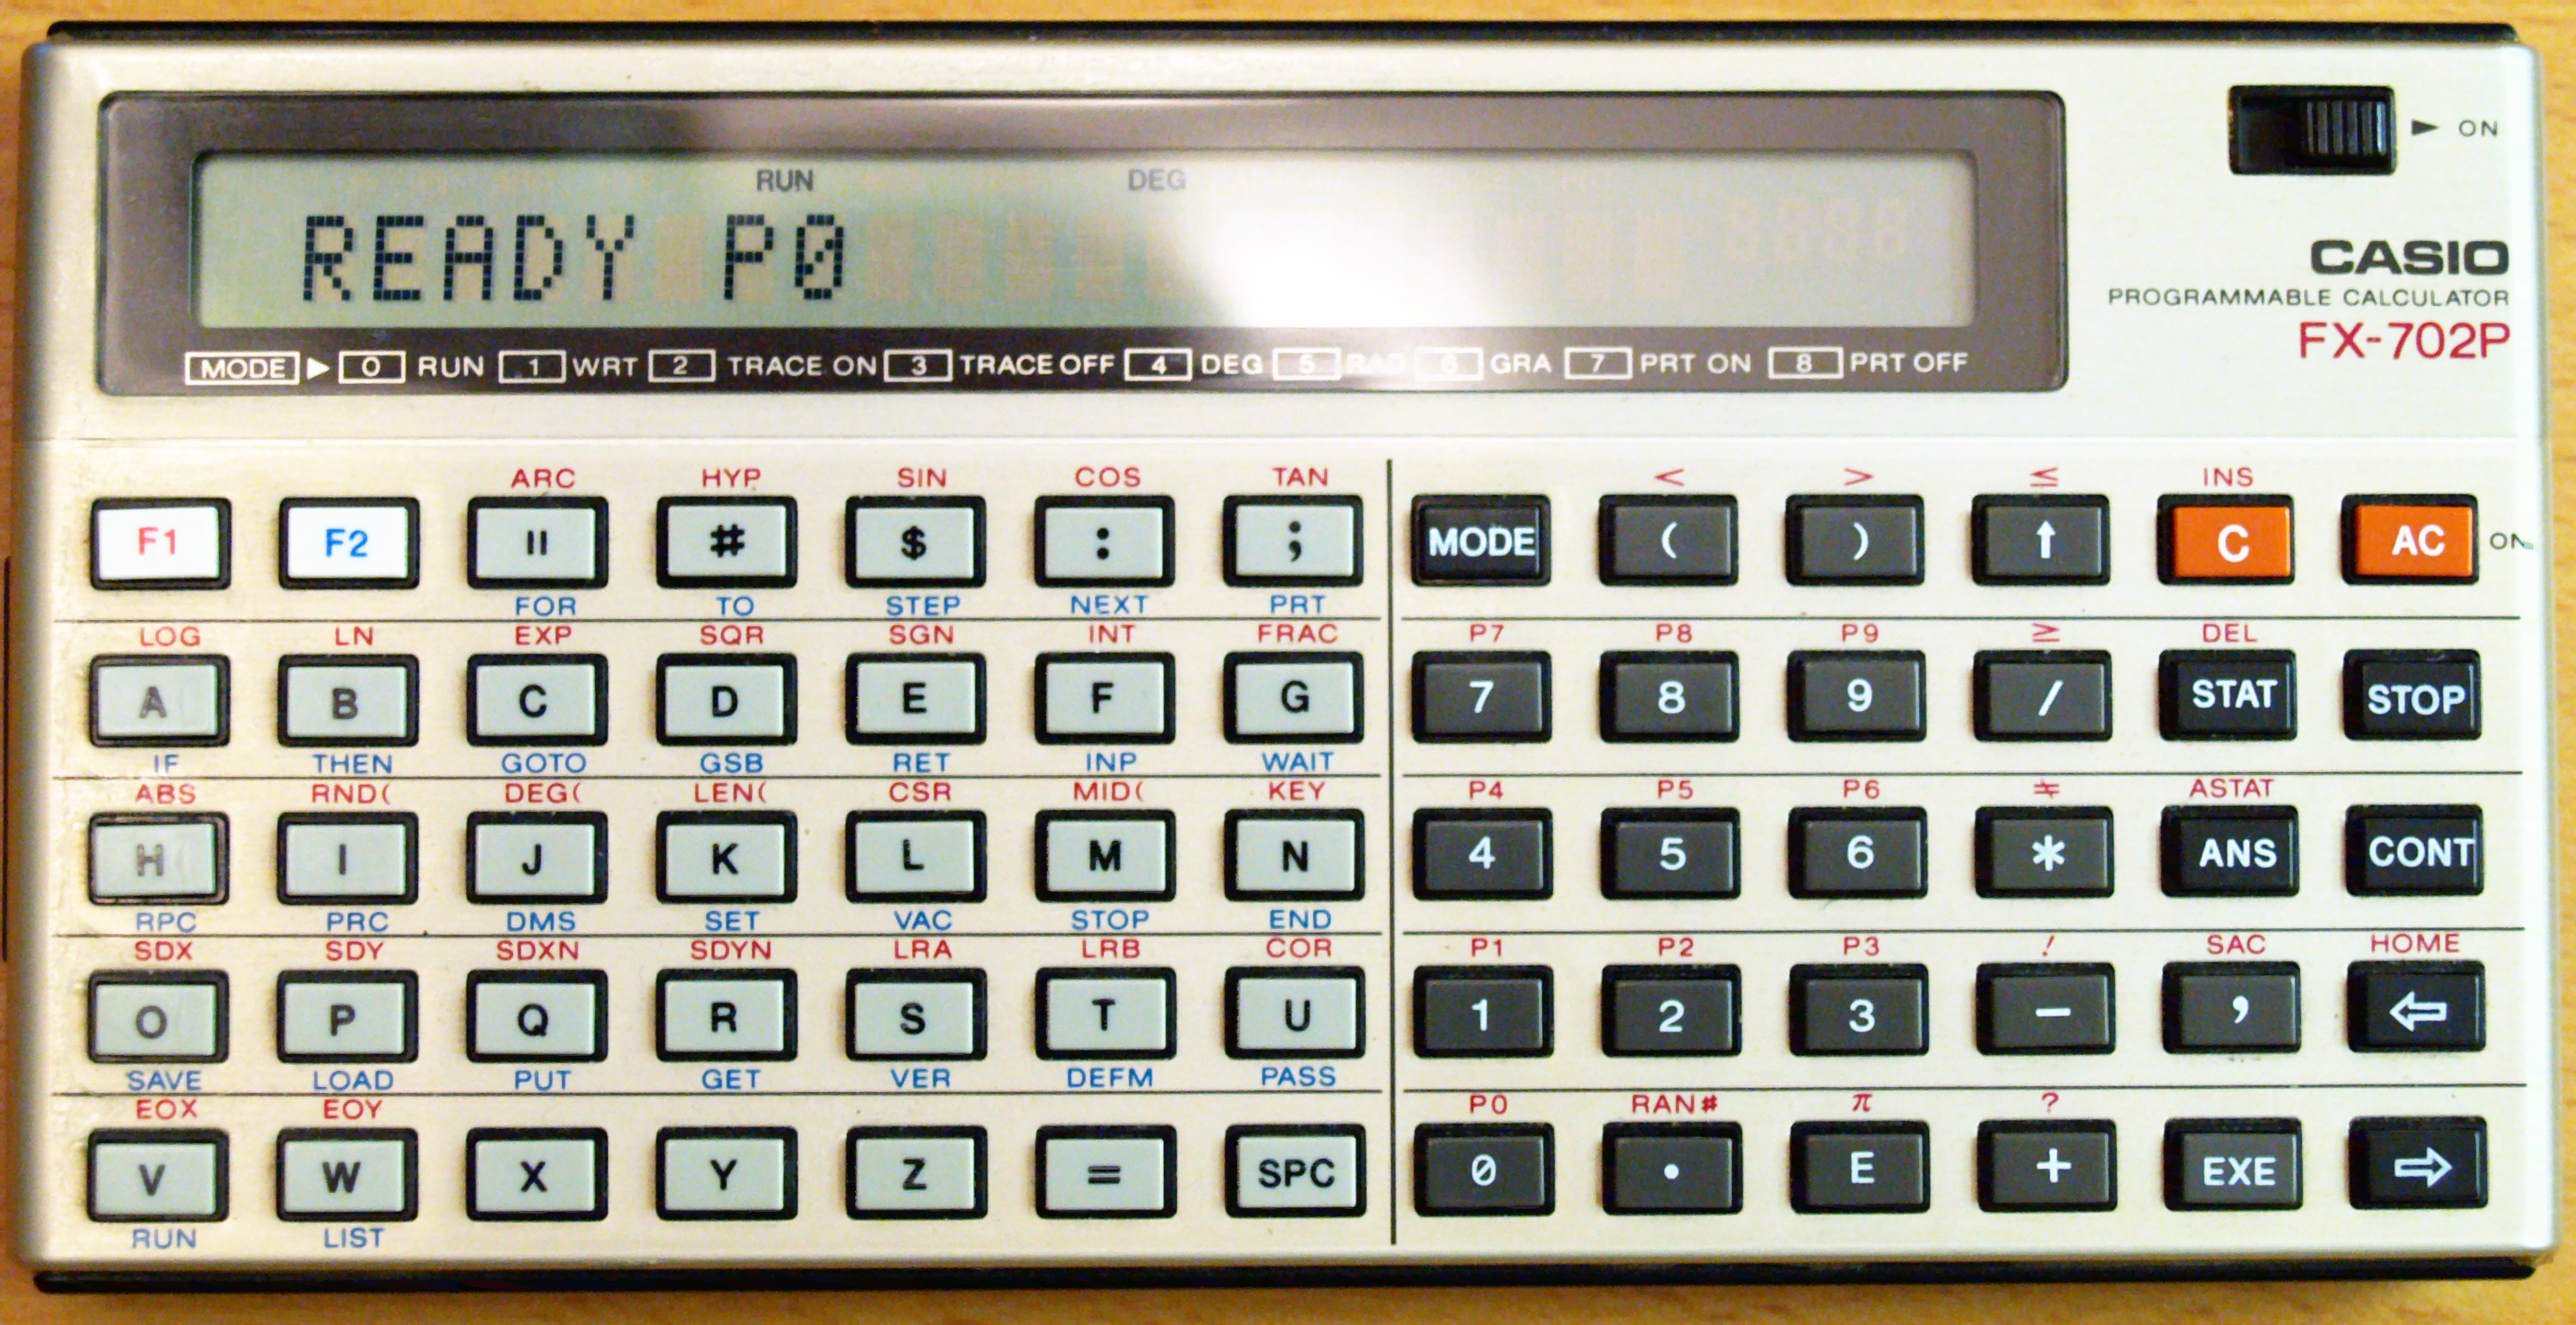 Casio_FX-702P_Programmable_Calculator.png